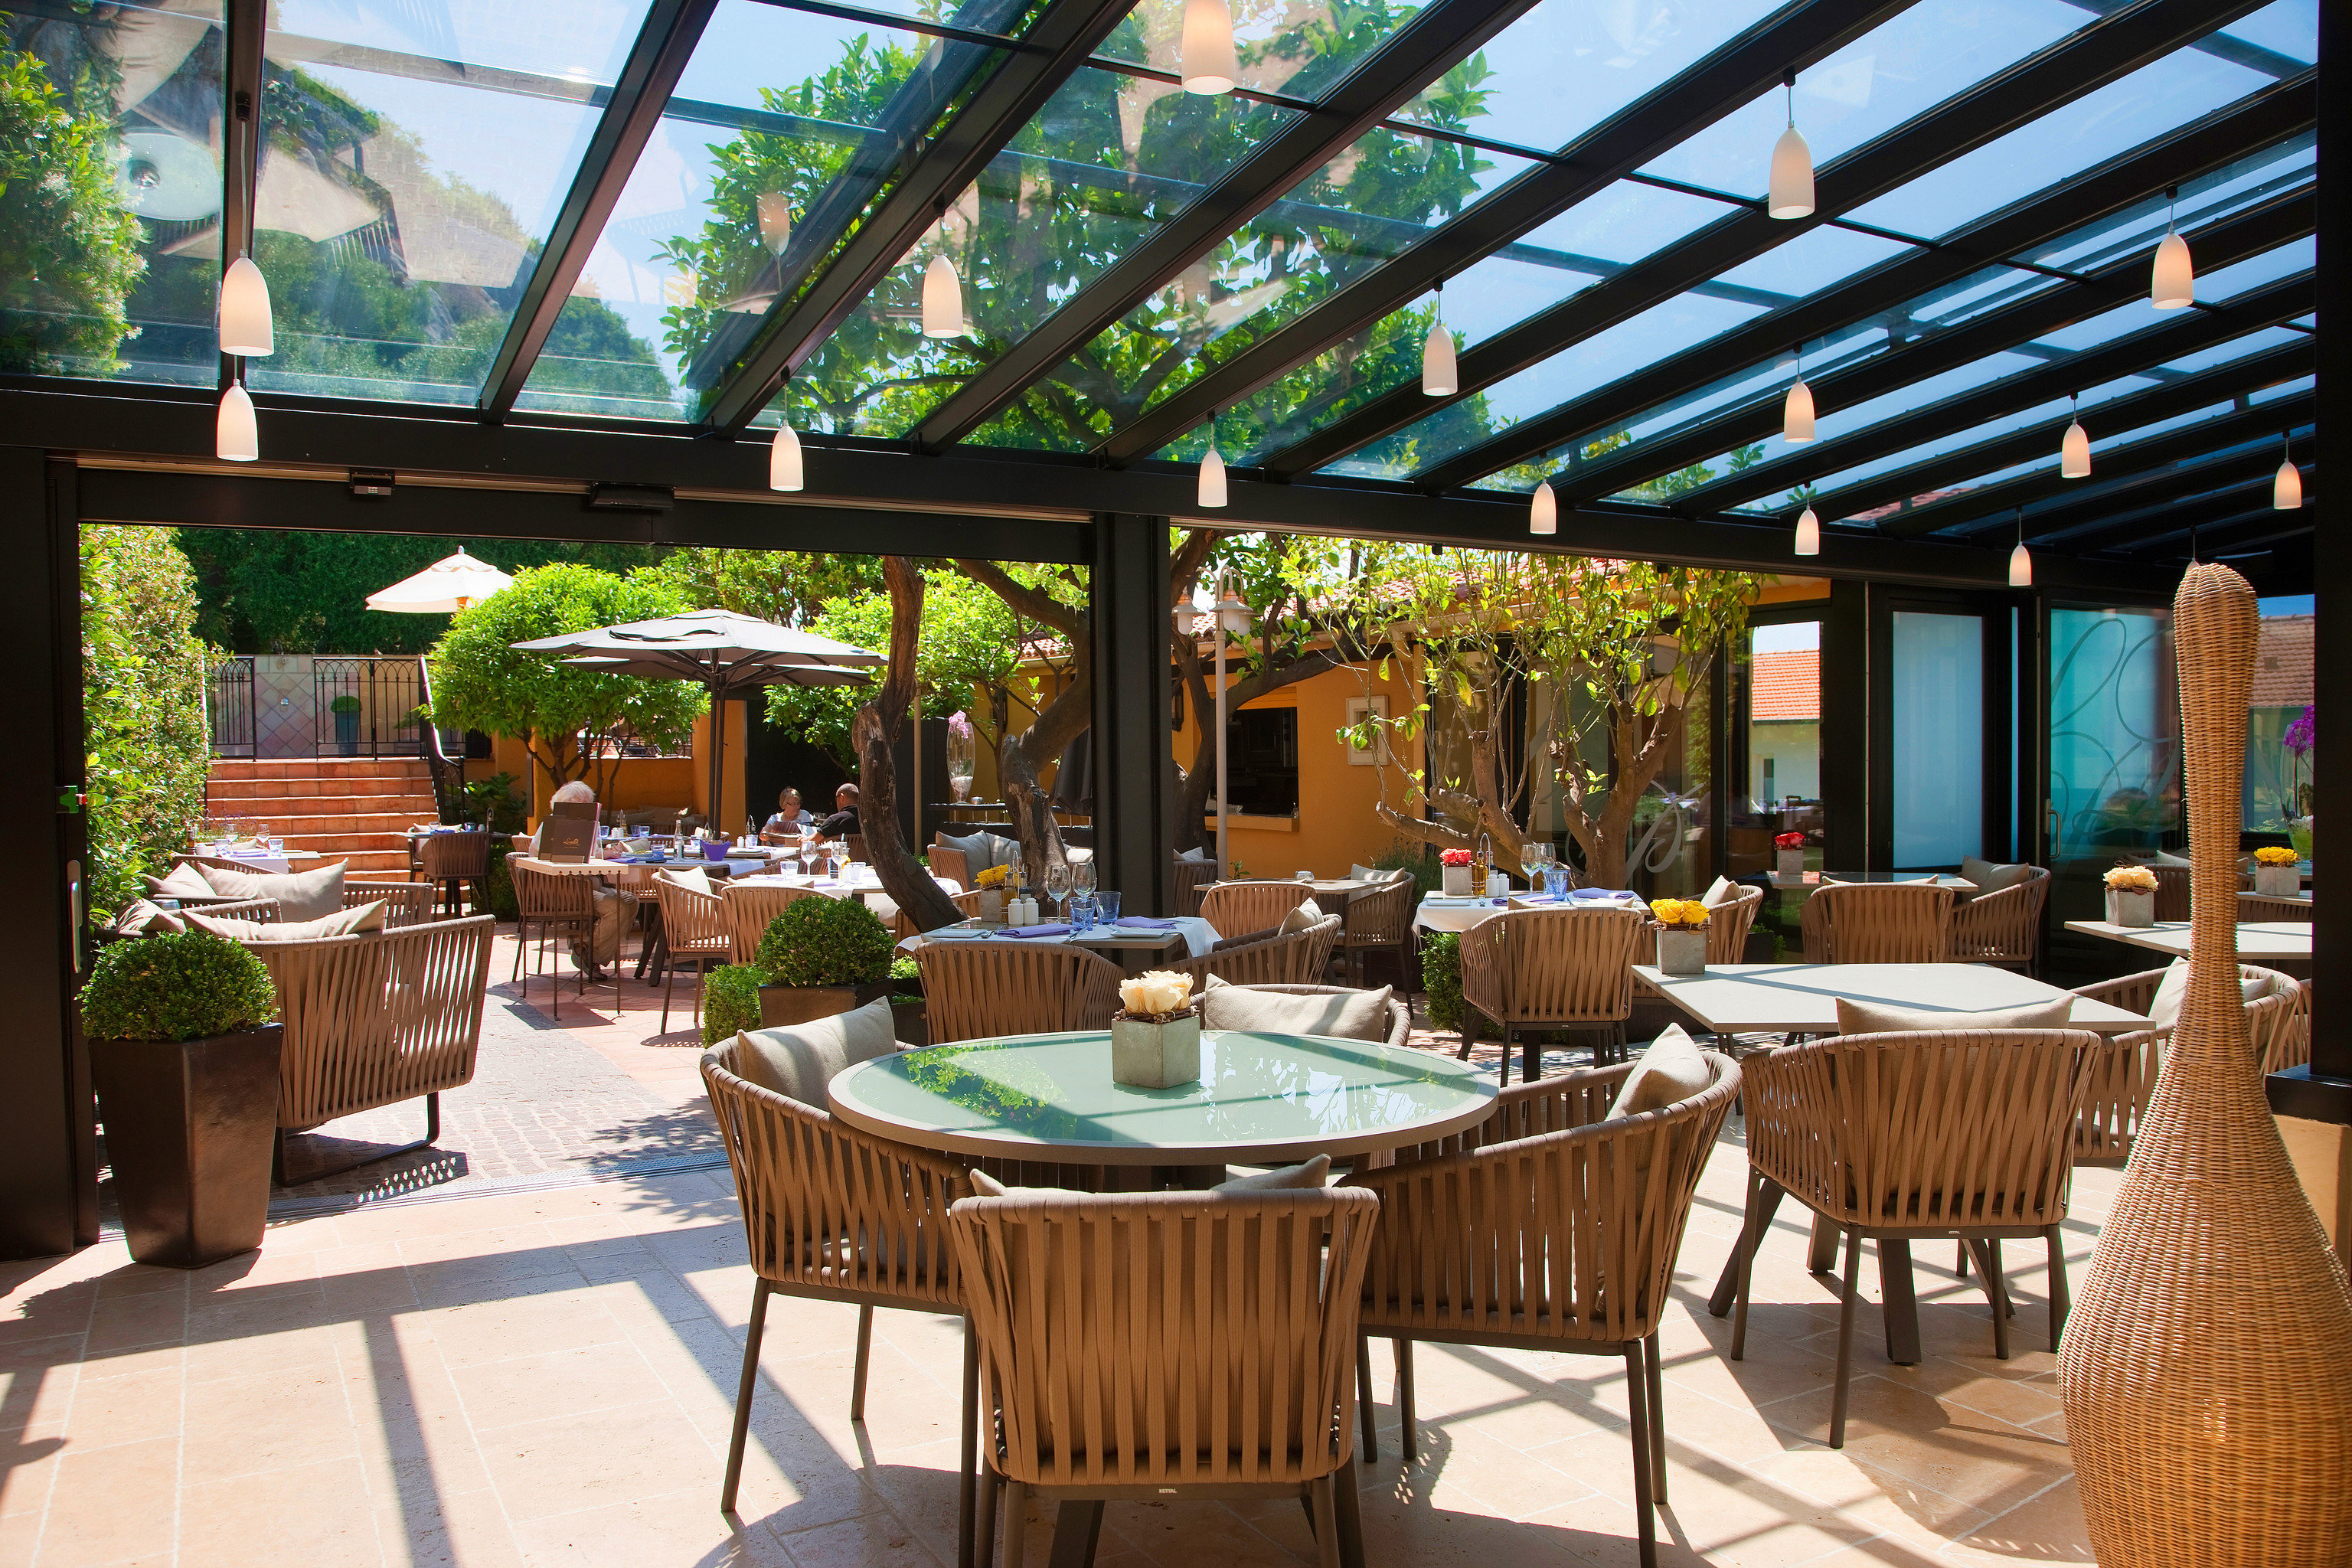 chair restaurant Resort function hall Dining outdoor structure day